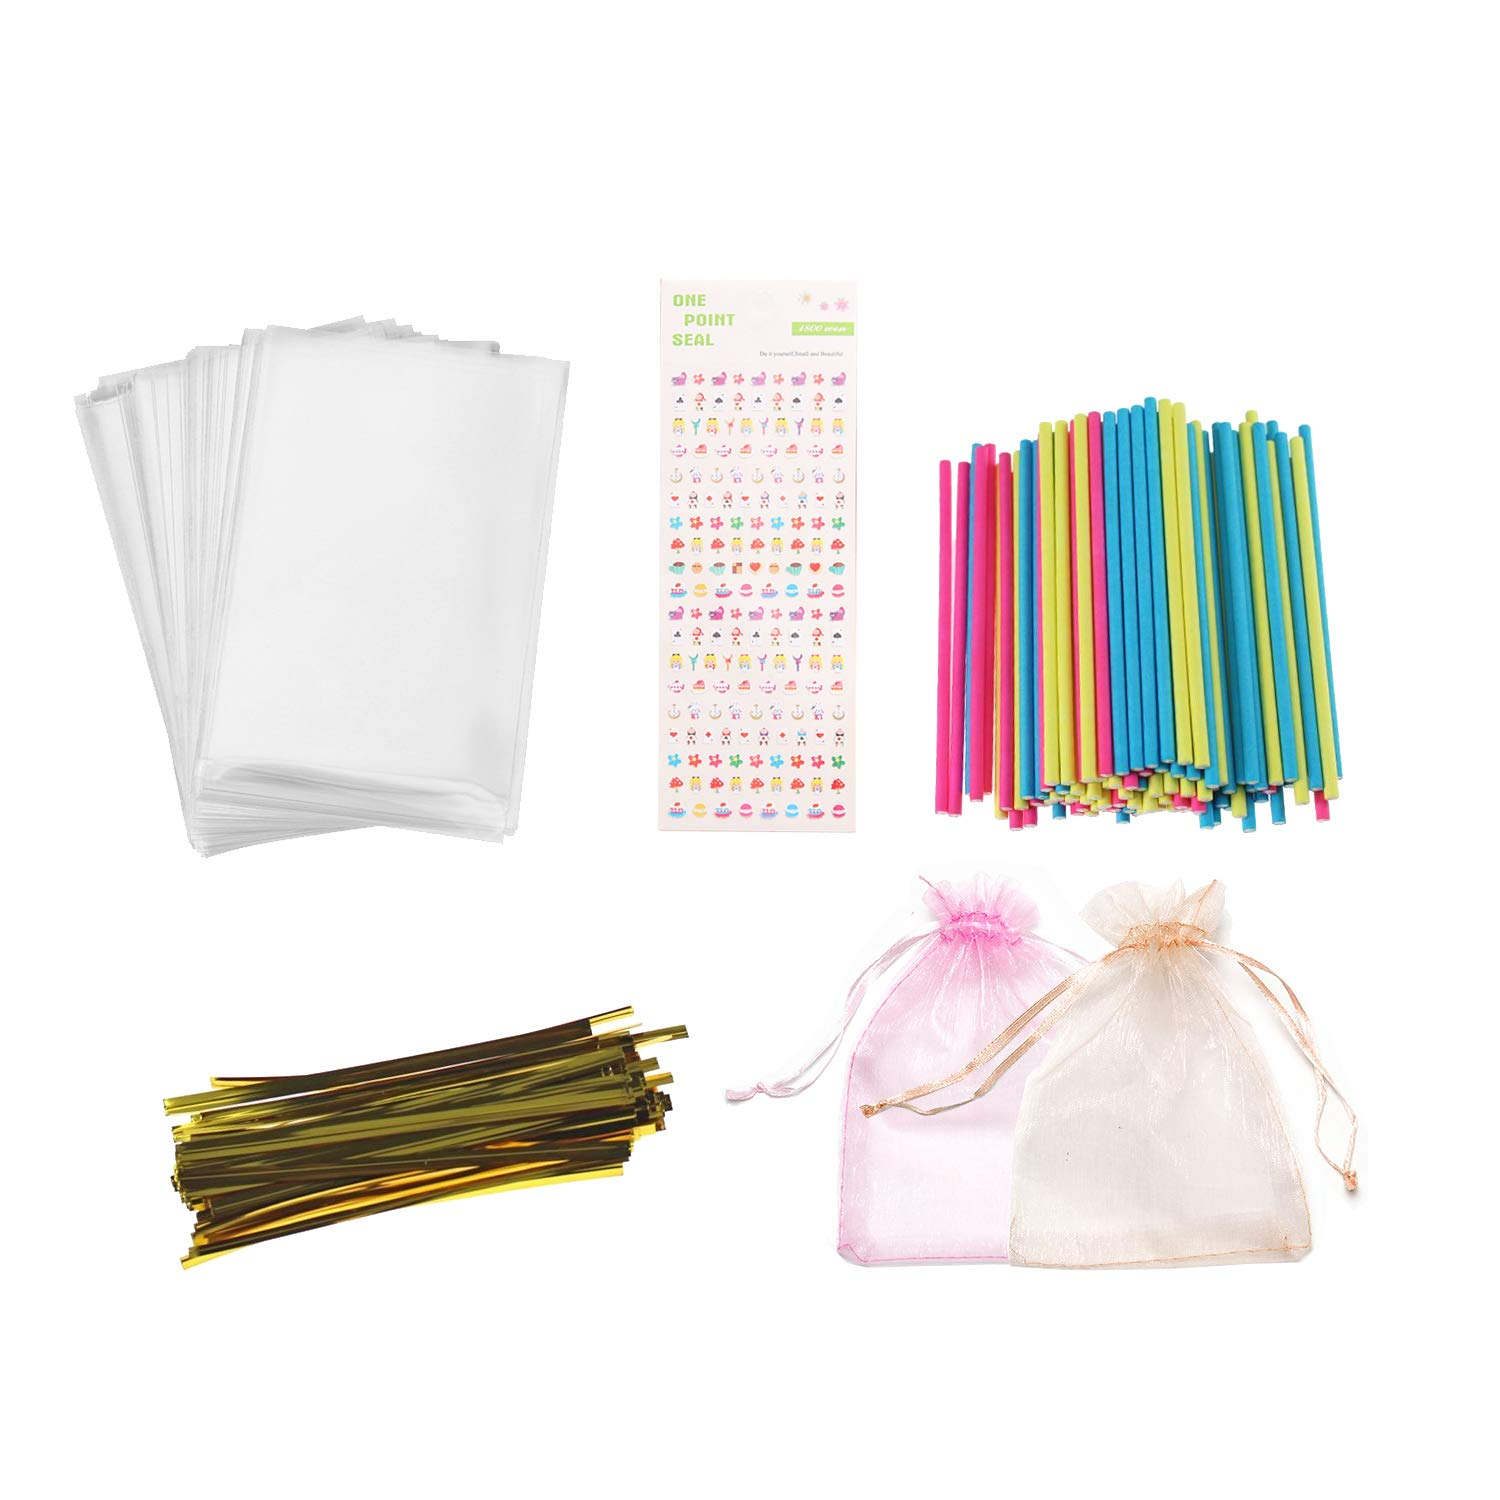 Lollipop Making Kit-399 PCS Cake Pops Making Accessories including Lollipop Sticks,Wrappers, Metallic Twist Ties to Make Your Own Lollipops Candies Chocolates and Cookies for Your Kids Berya CO. LTD